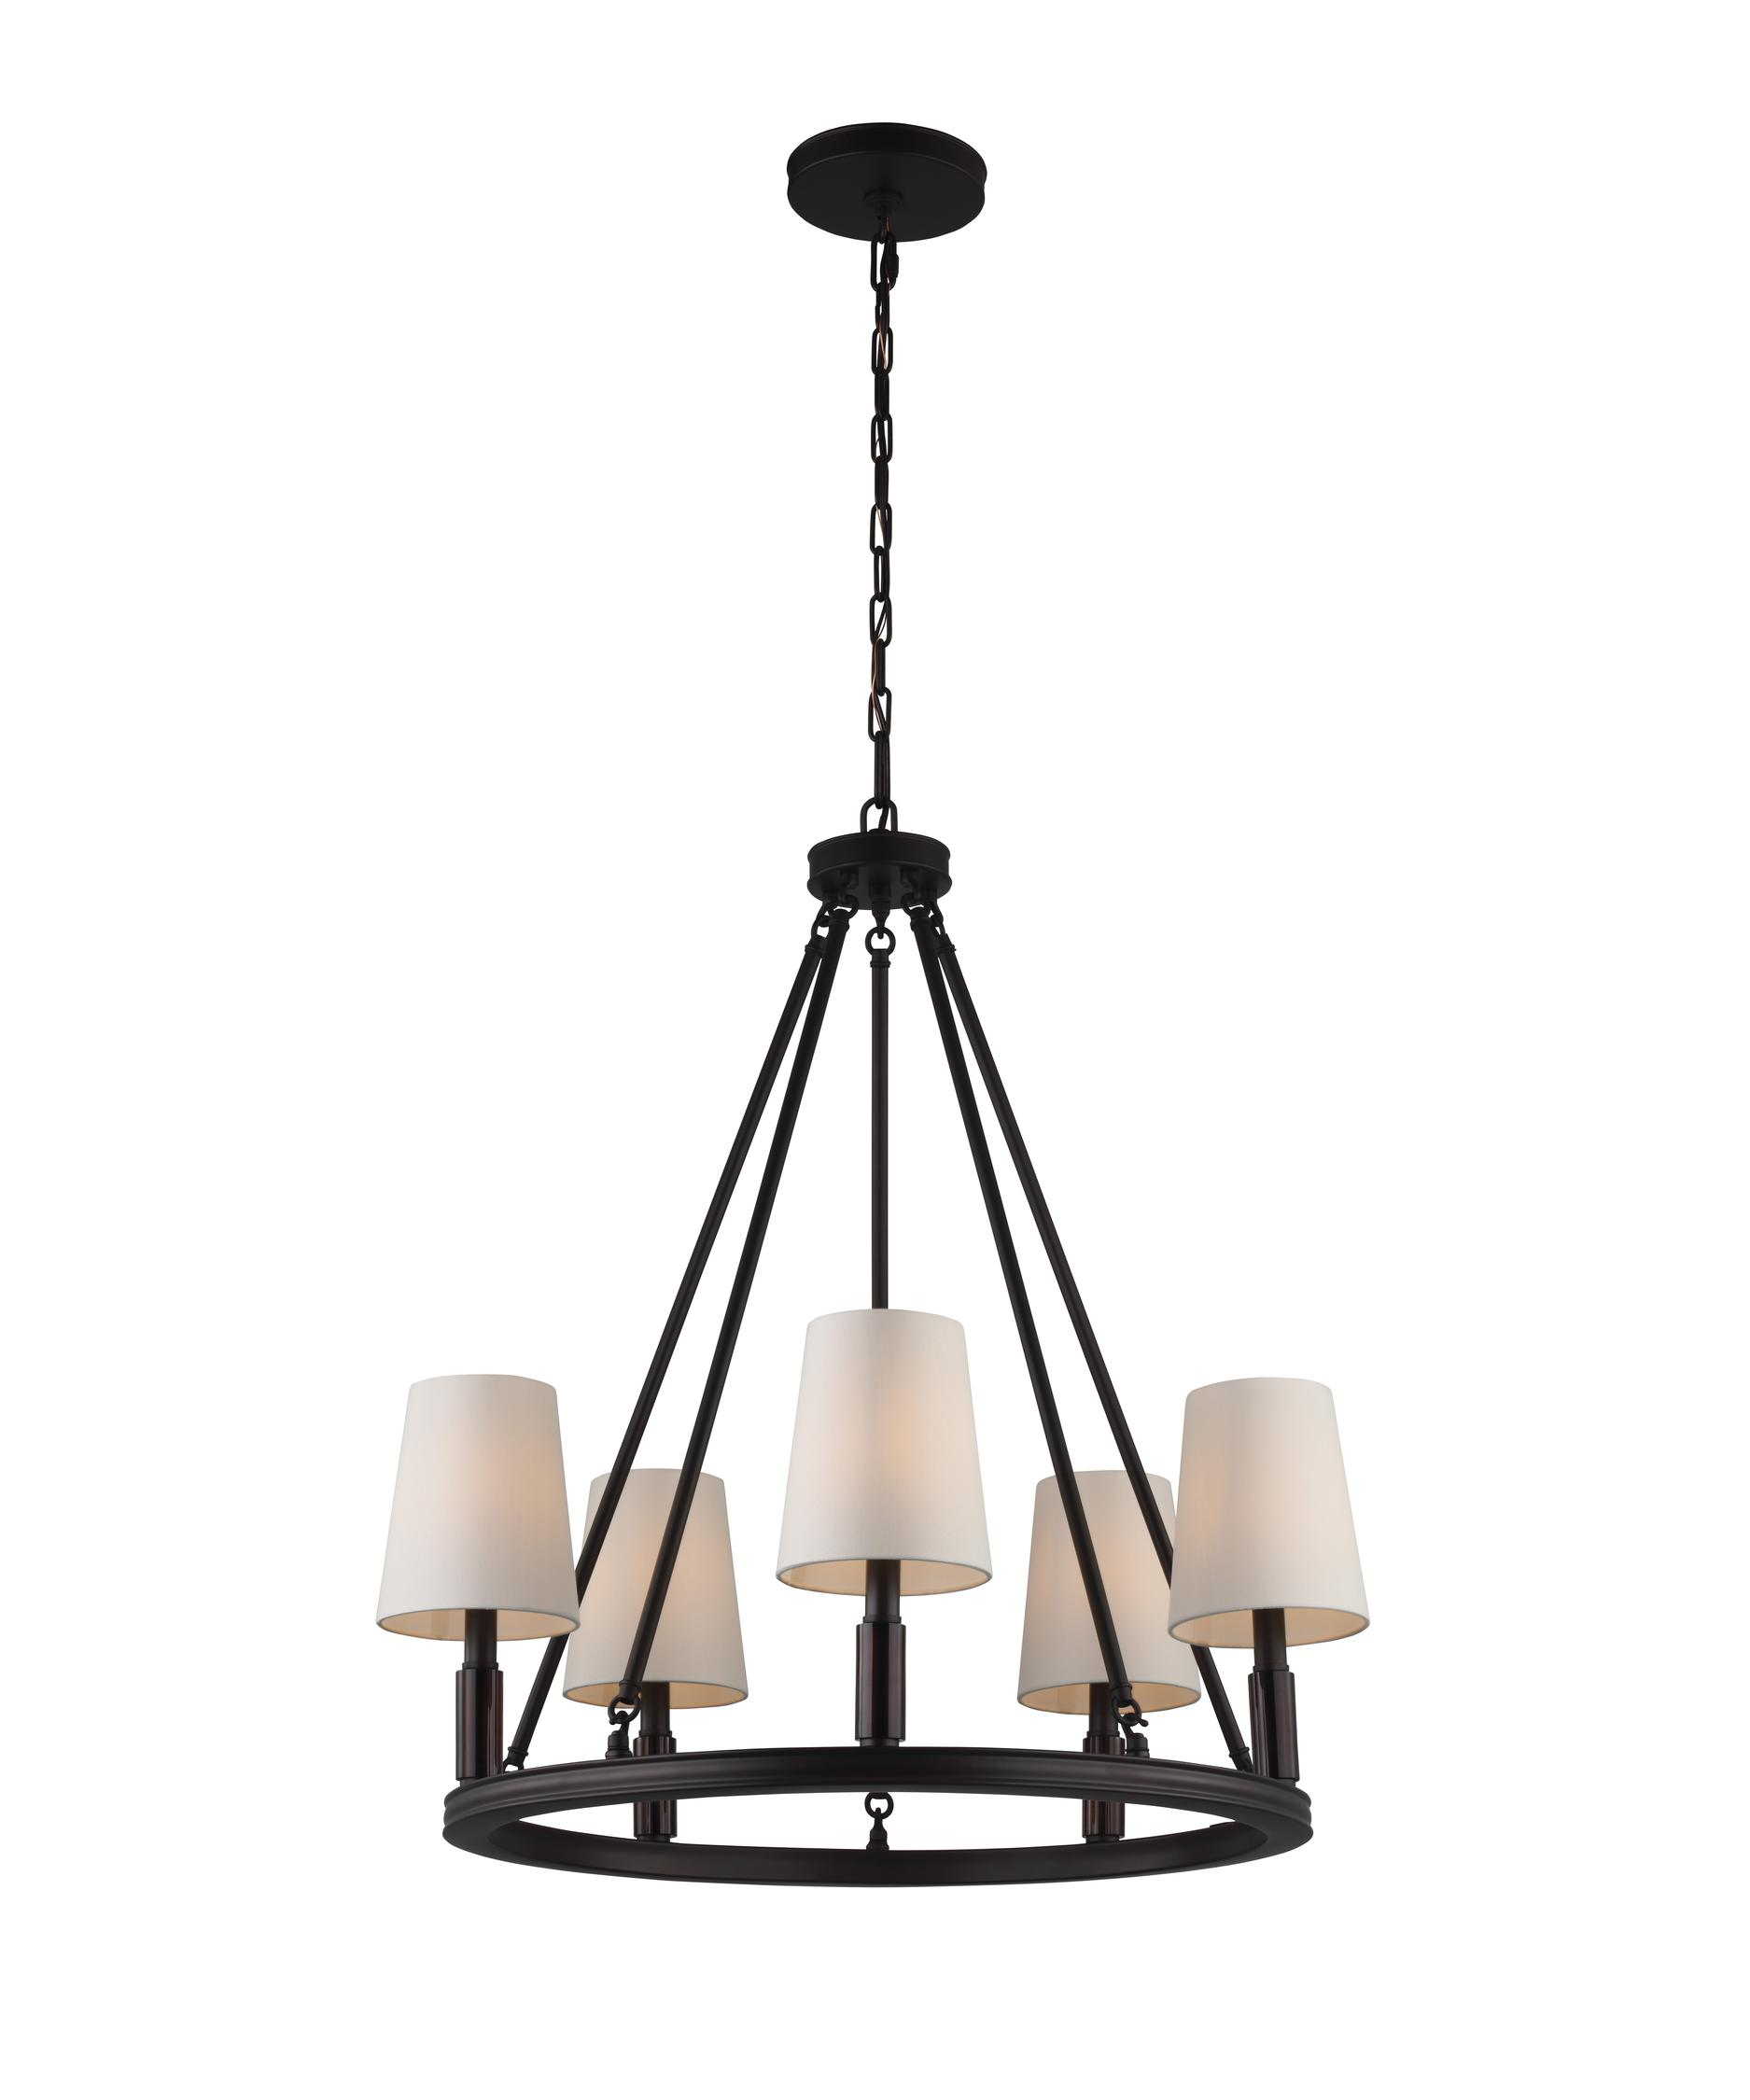 Murray Feiss Lismore 28 Inch Wide 5 Light Chandelier – Murray Feiss Chandeliers